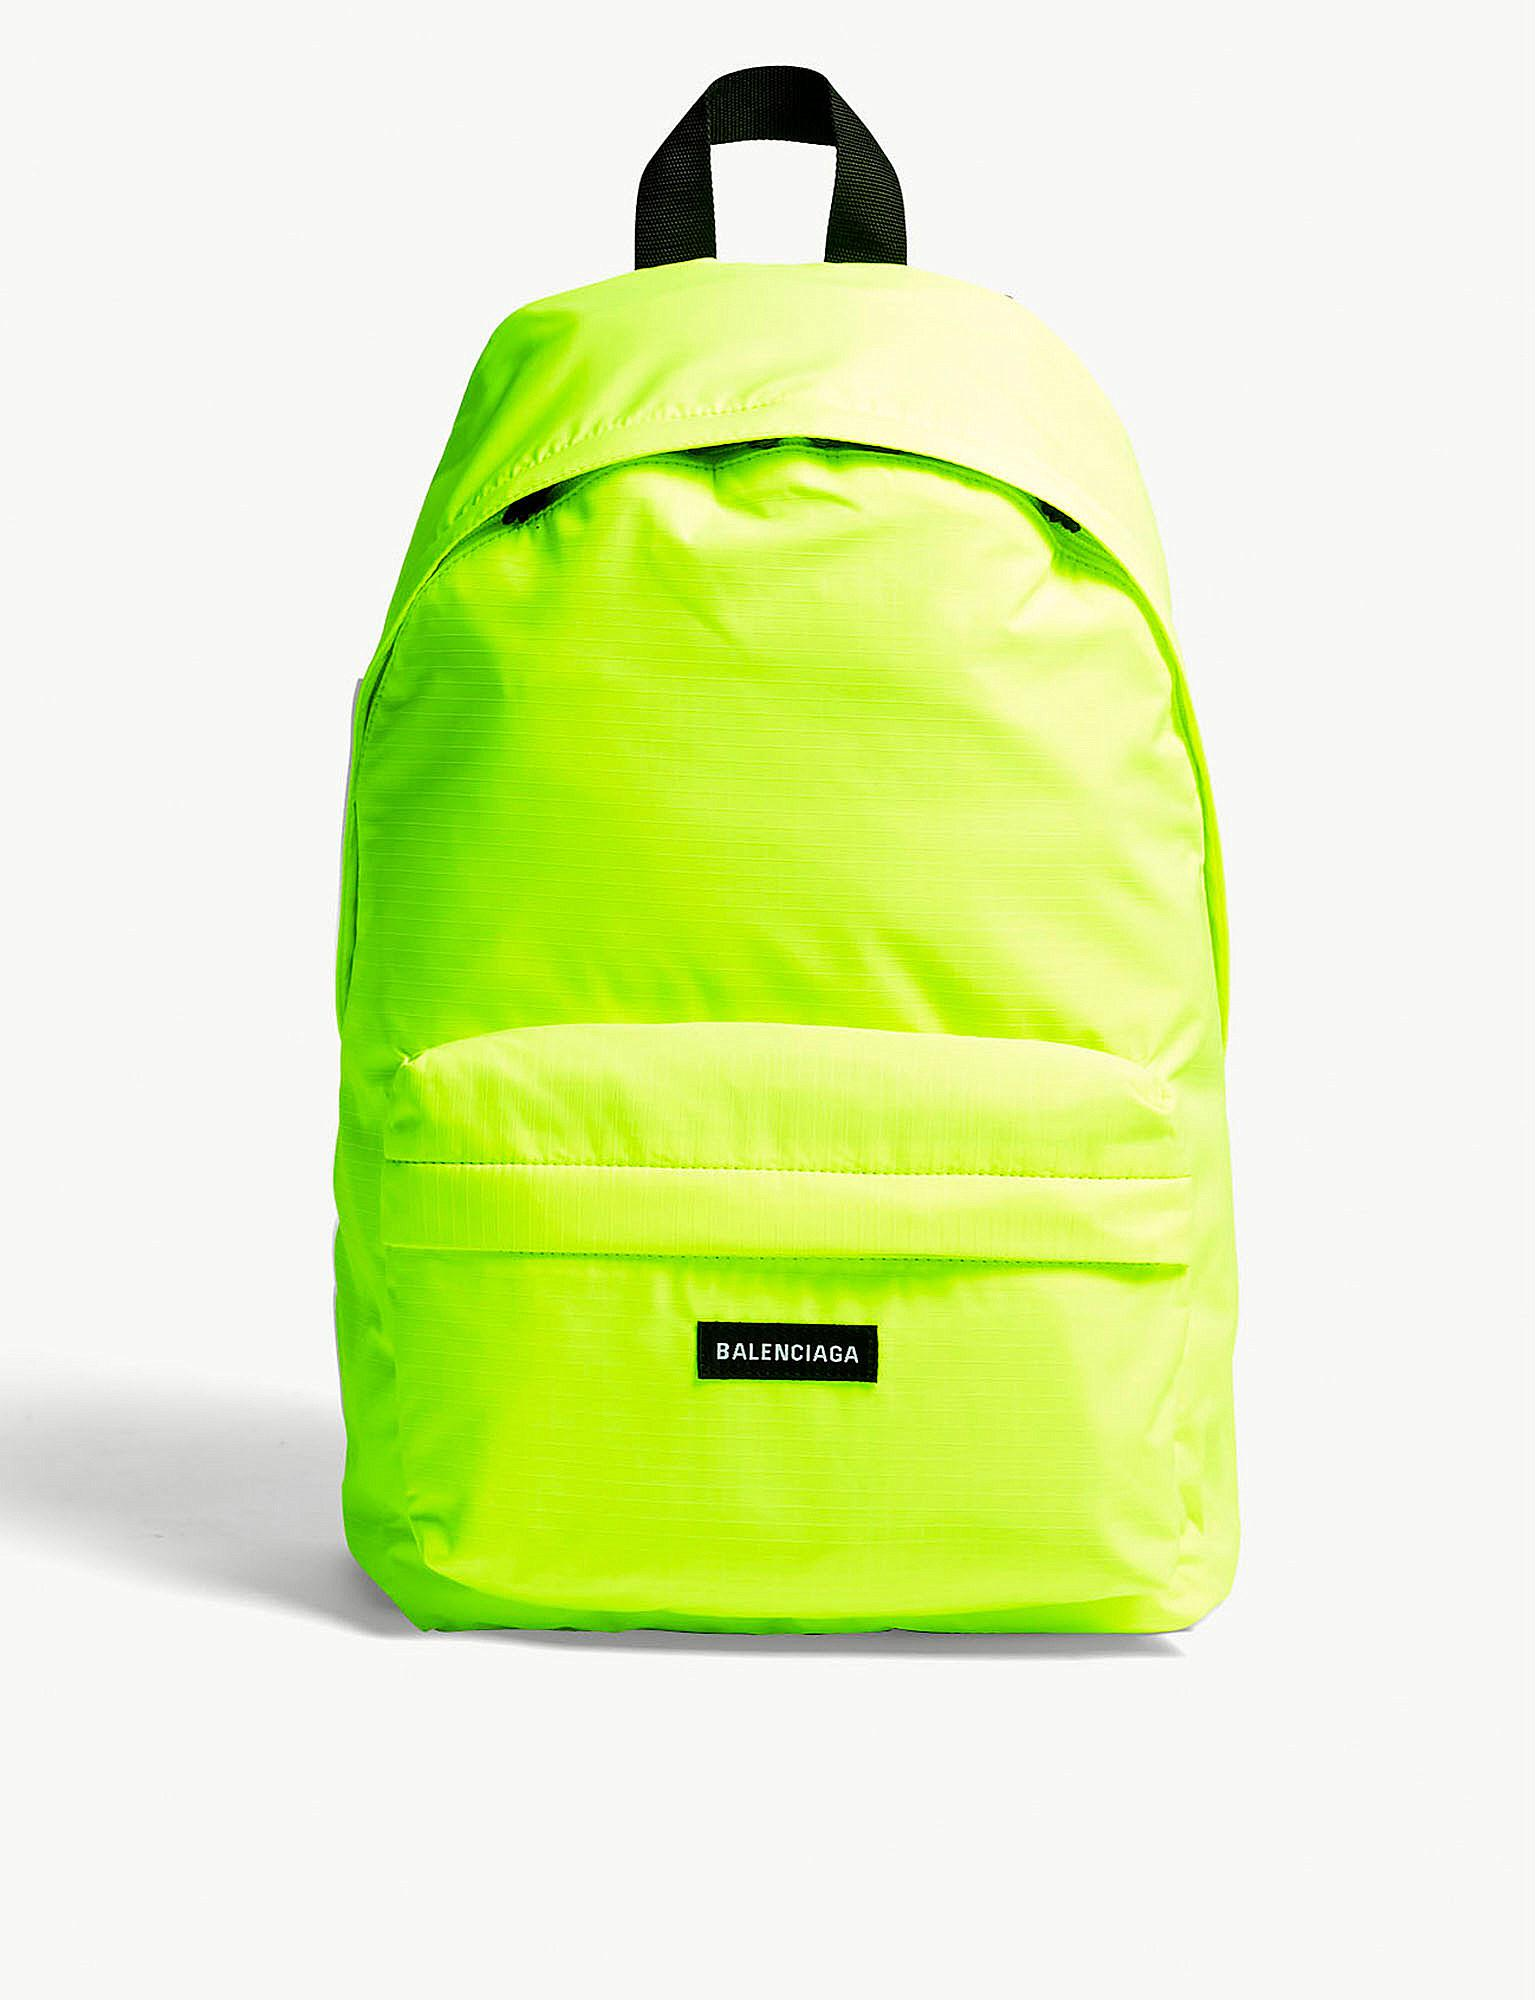 Lyst - Balenciaga Neon Green Explorer Backpack in Yellow for Men 99ce076ef115f